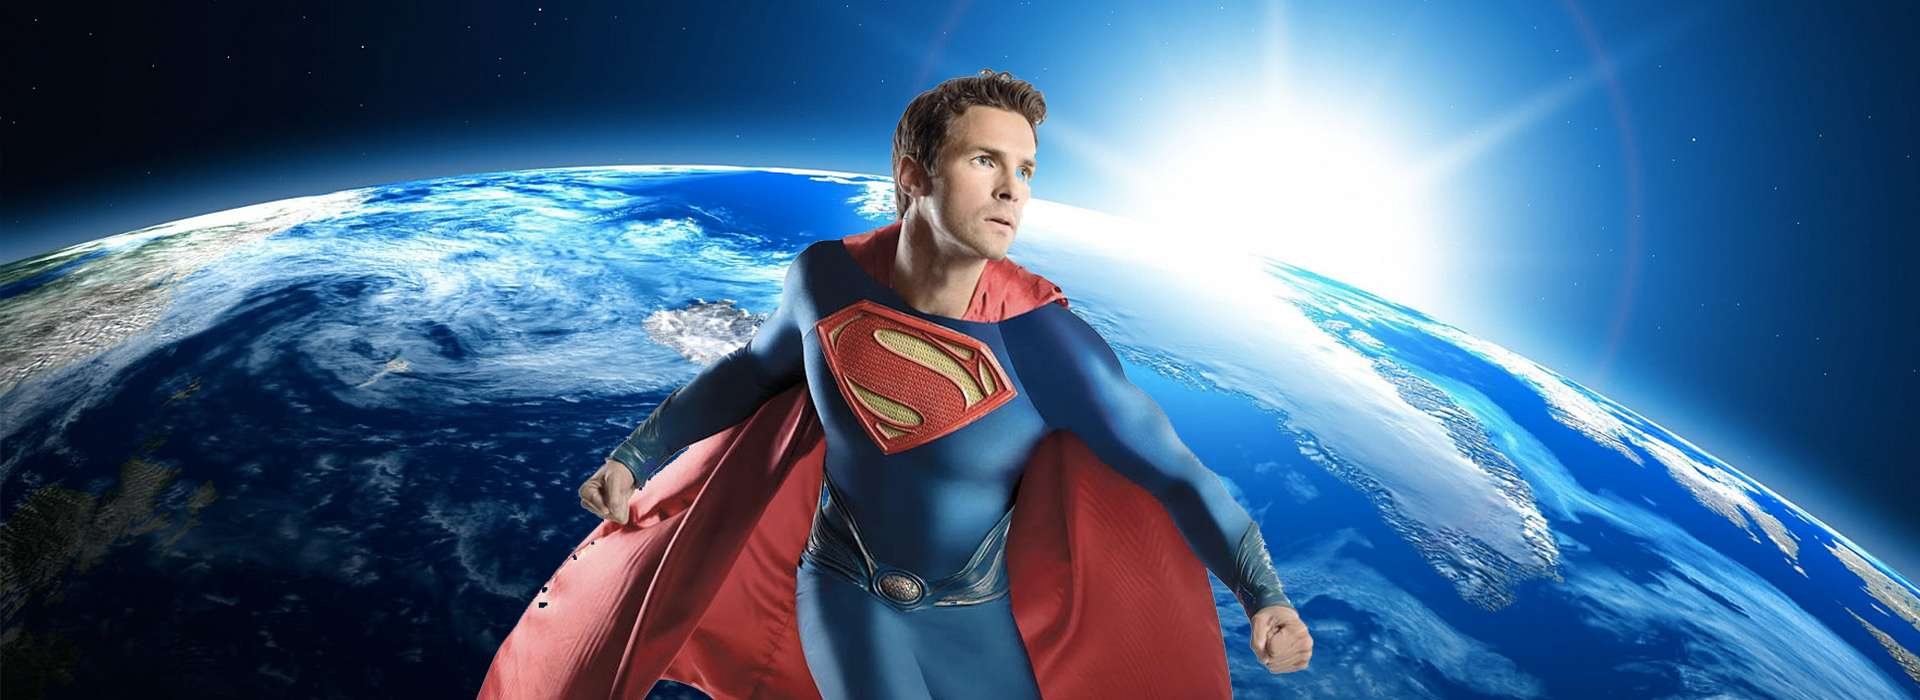 Slider d'images de l'animation Superman